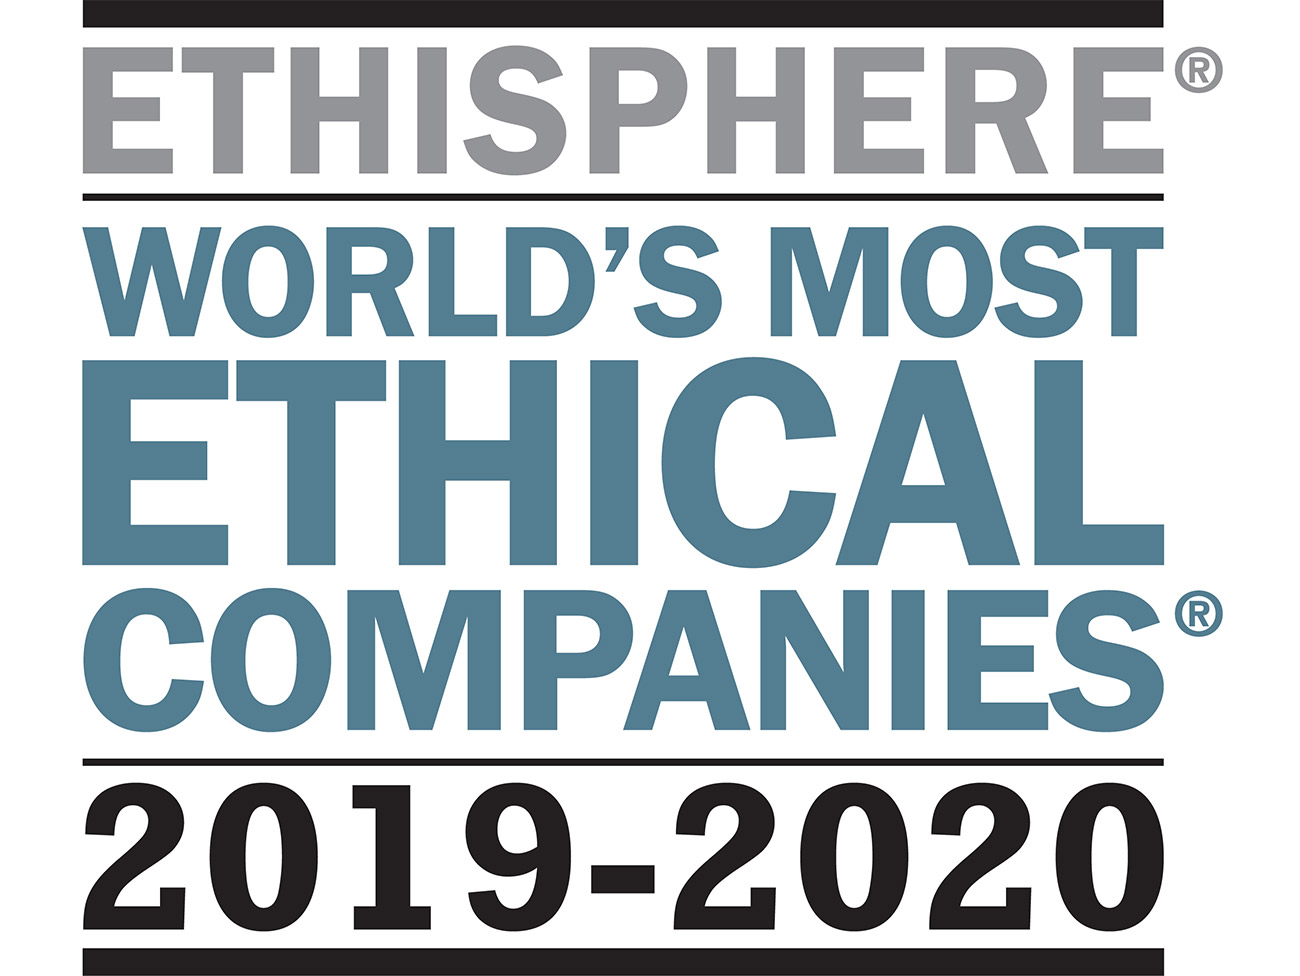 Ethisphere World's Most Ethical Companies 2019-2020 logo